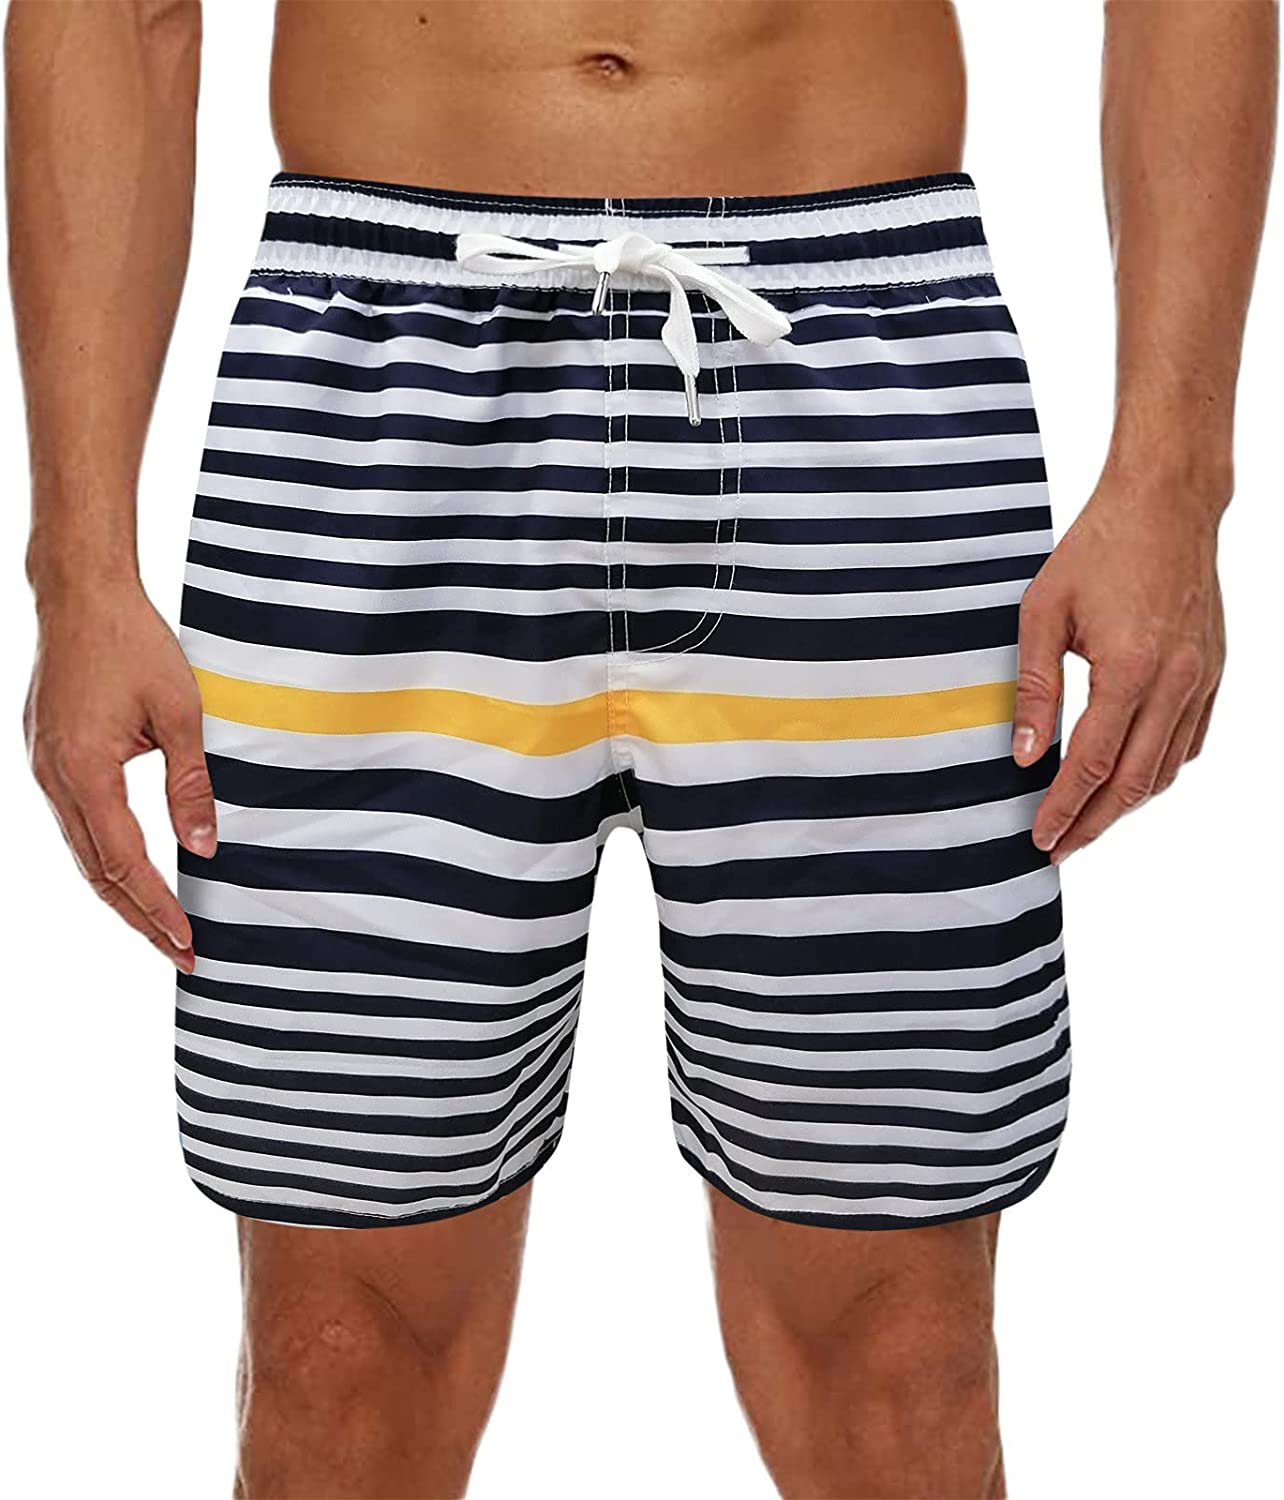 FUNEY Mens Swim Trunks Summer Fitness Sports Surfing Quick-Drying Beach Shorts Funny Swimwear Bathing Suits with Pockets